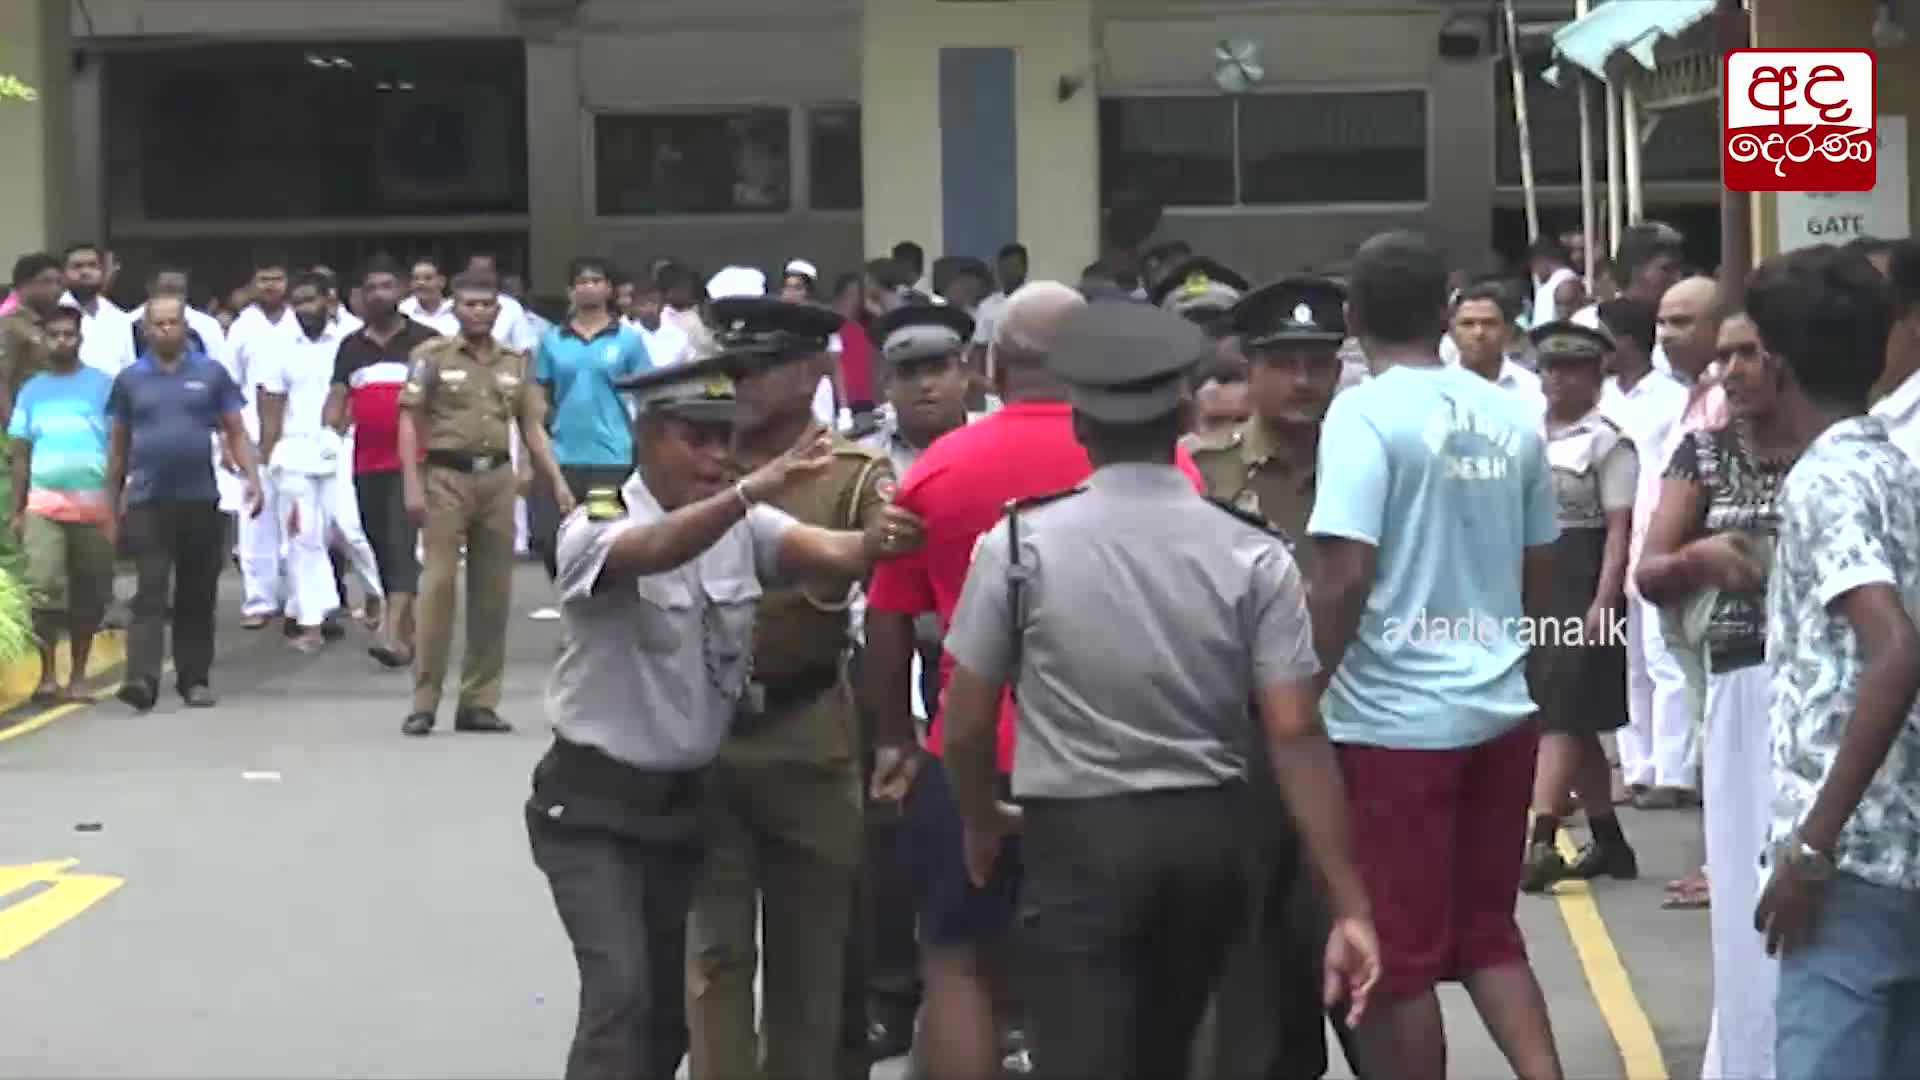 Footage from Colombo National Hospital area